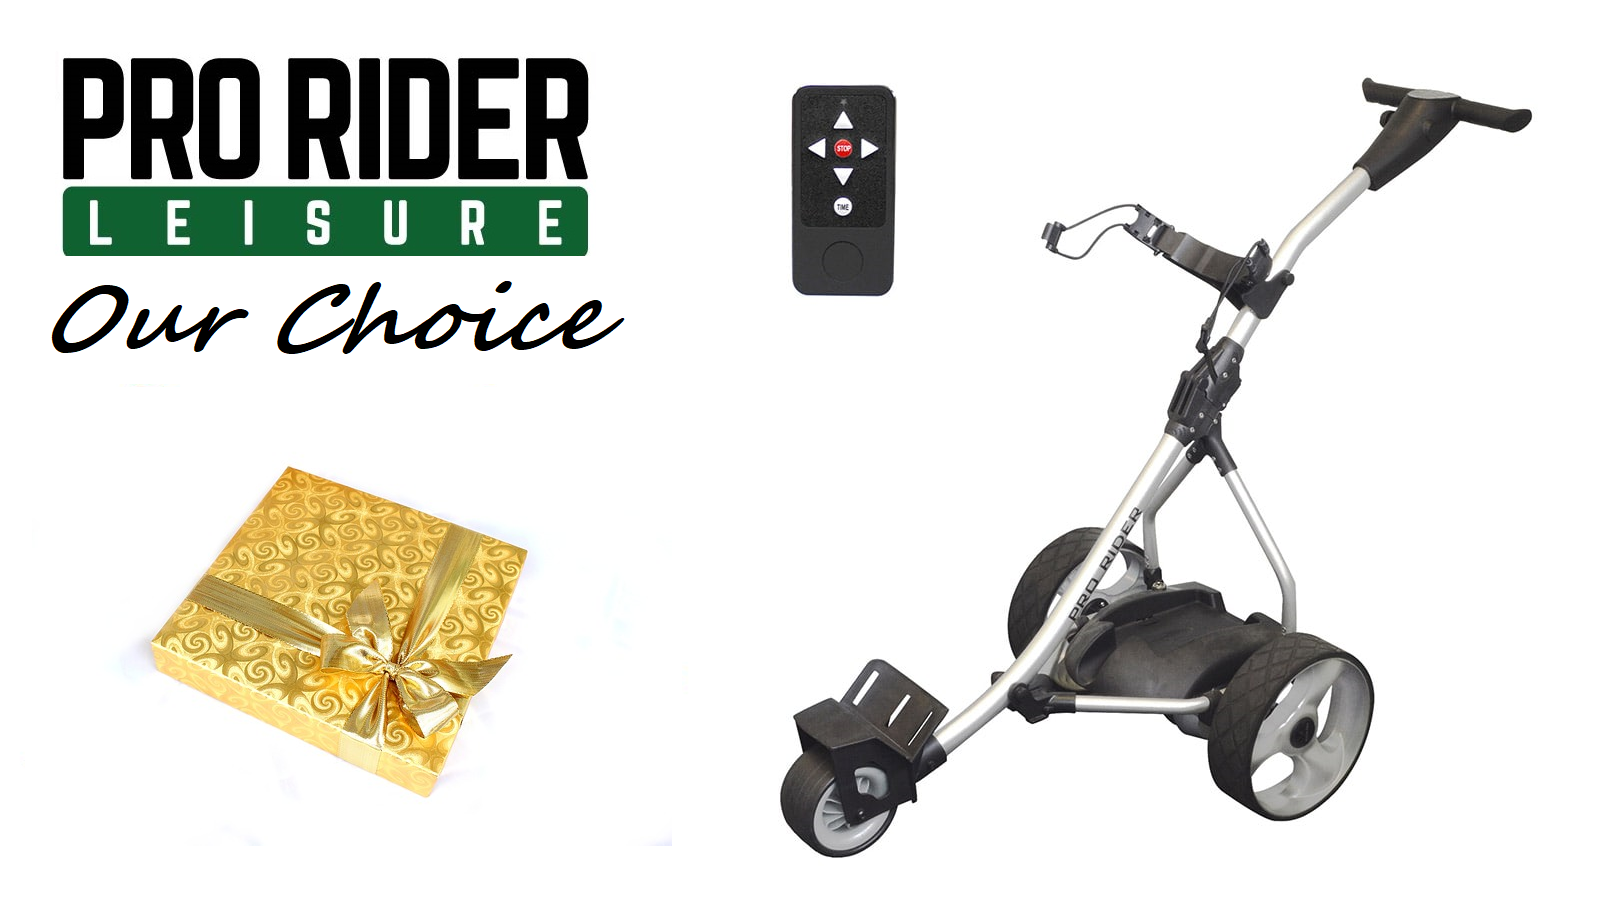 Pro Rider Remote Control Golf Trolley with Present and text